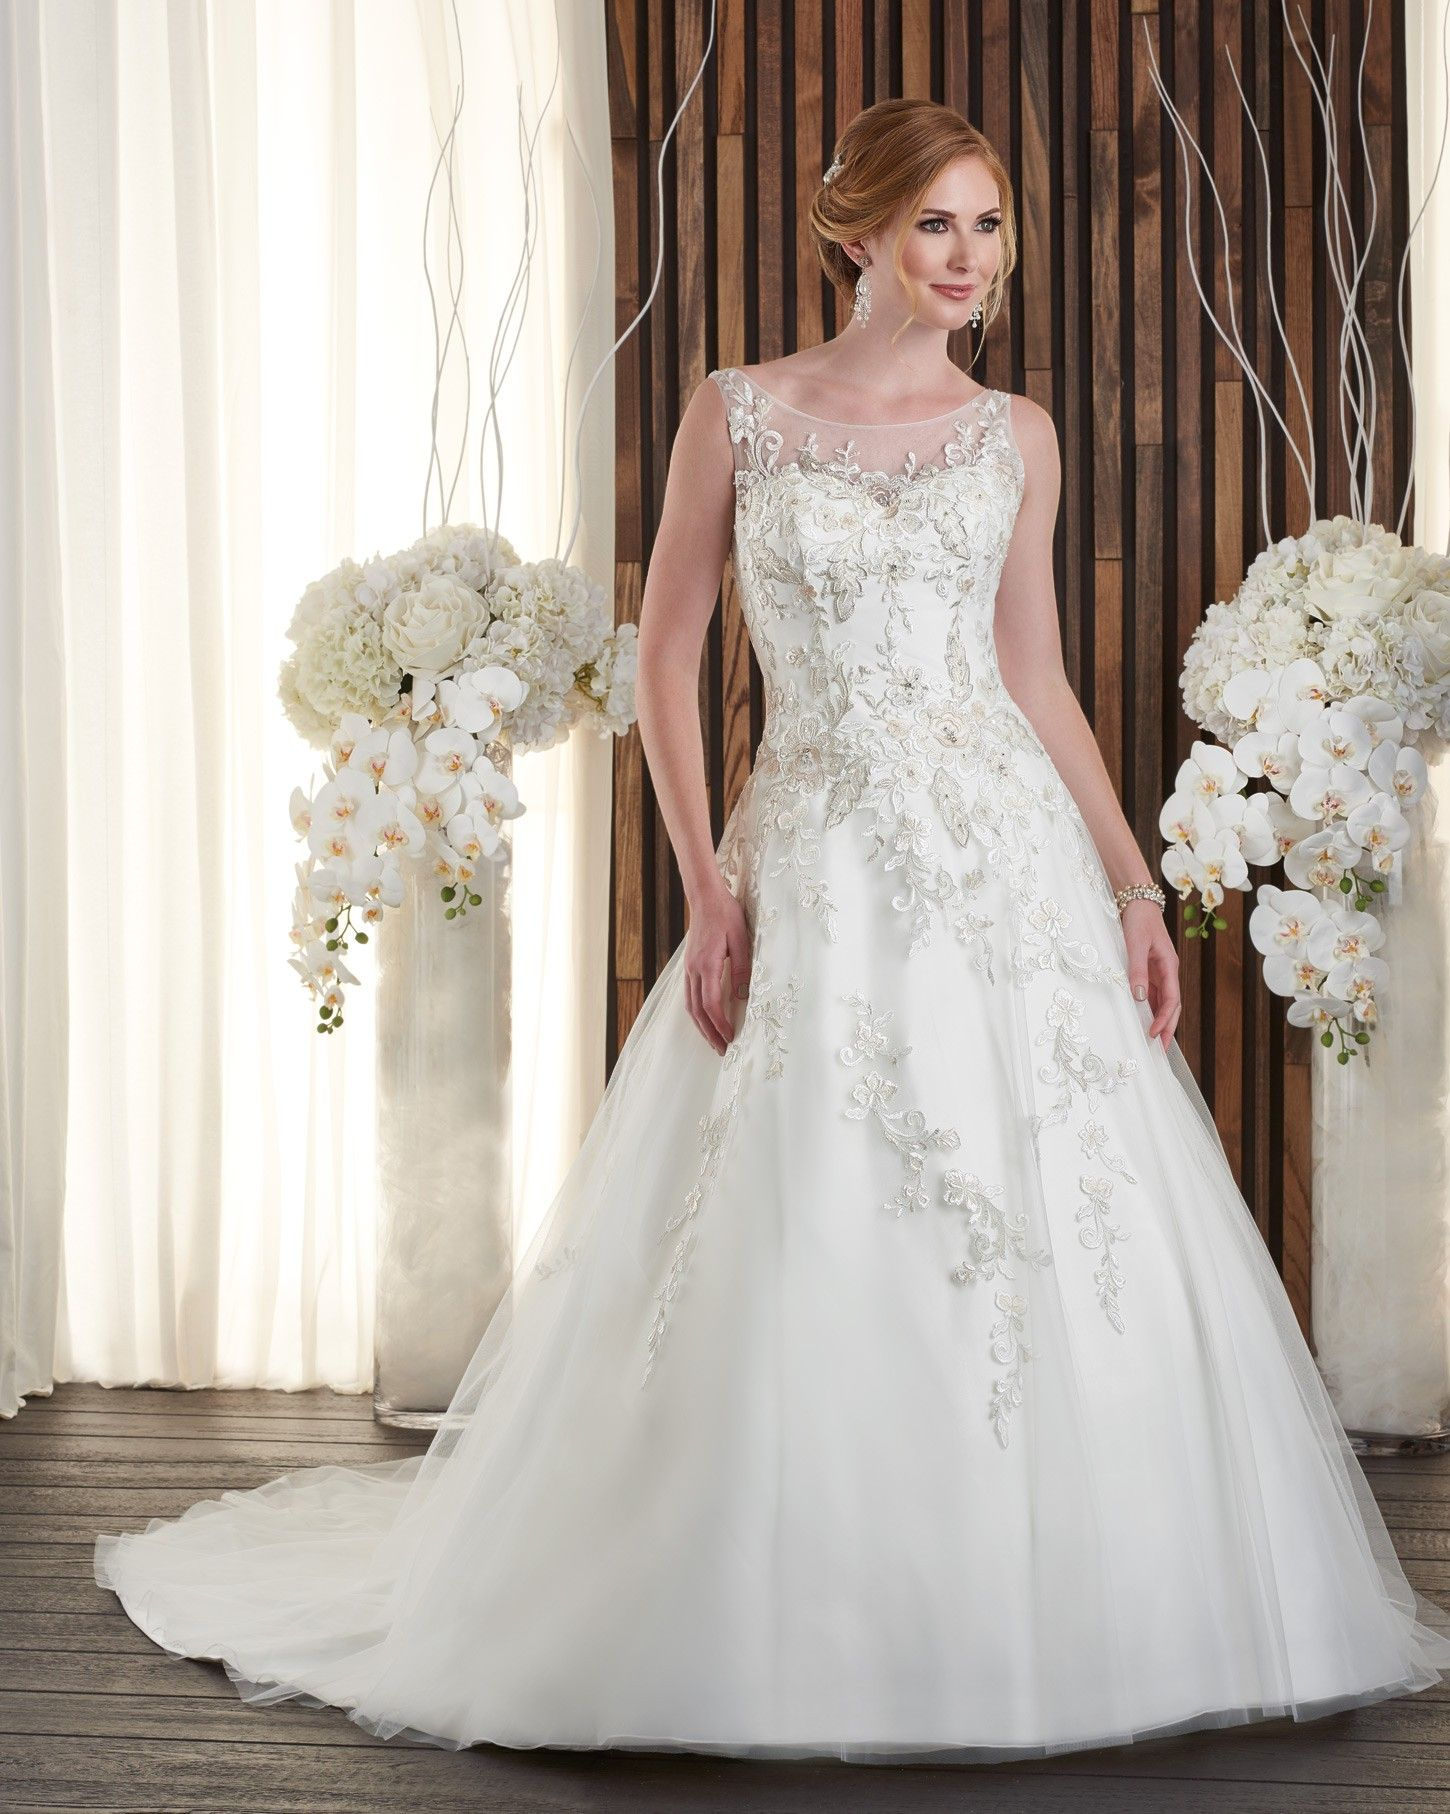 Best affordable wedding dress shops london  Pin by Wedding Dresses on WD ALine Wedding Dress  Pinterest